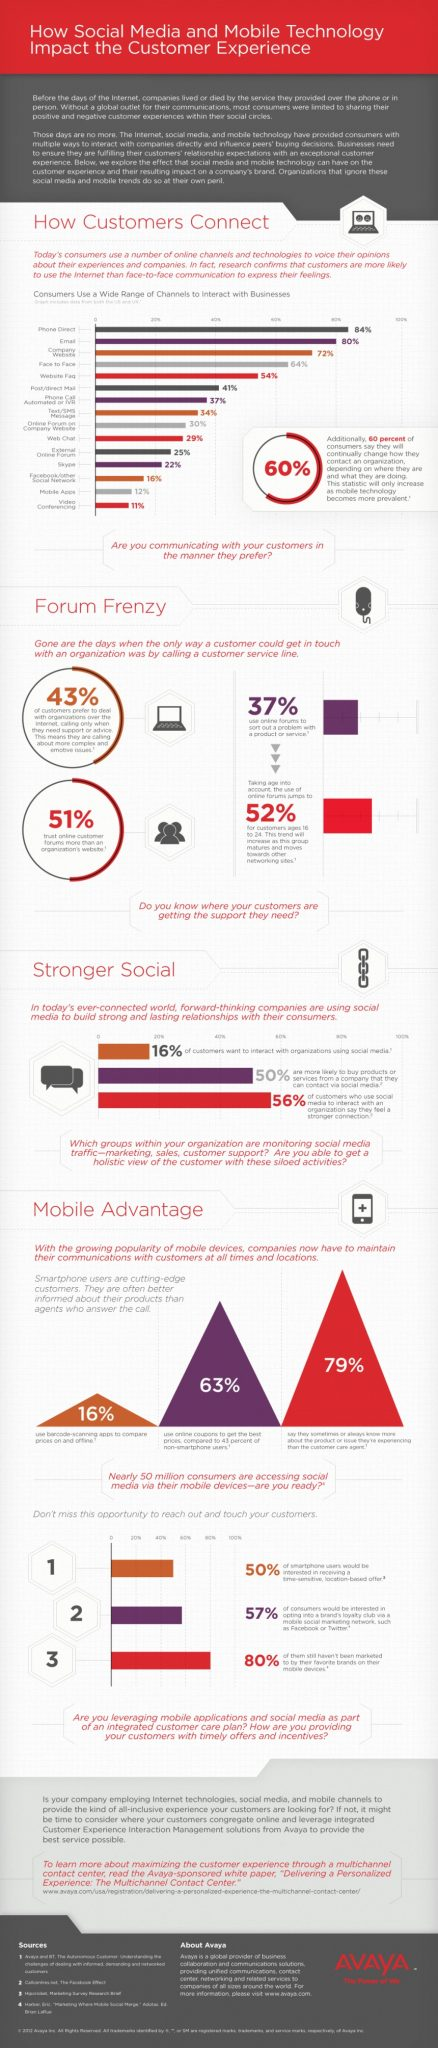 How Social Media and Mobile Technology Impact the Customer Experience